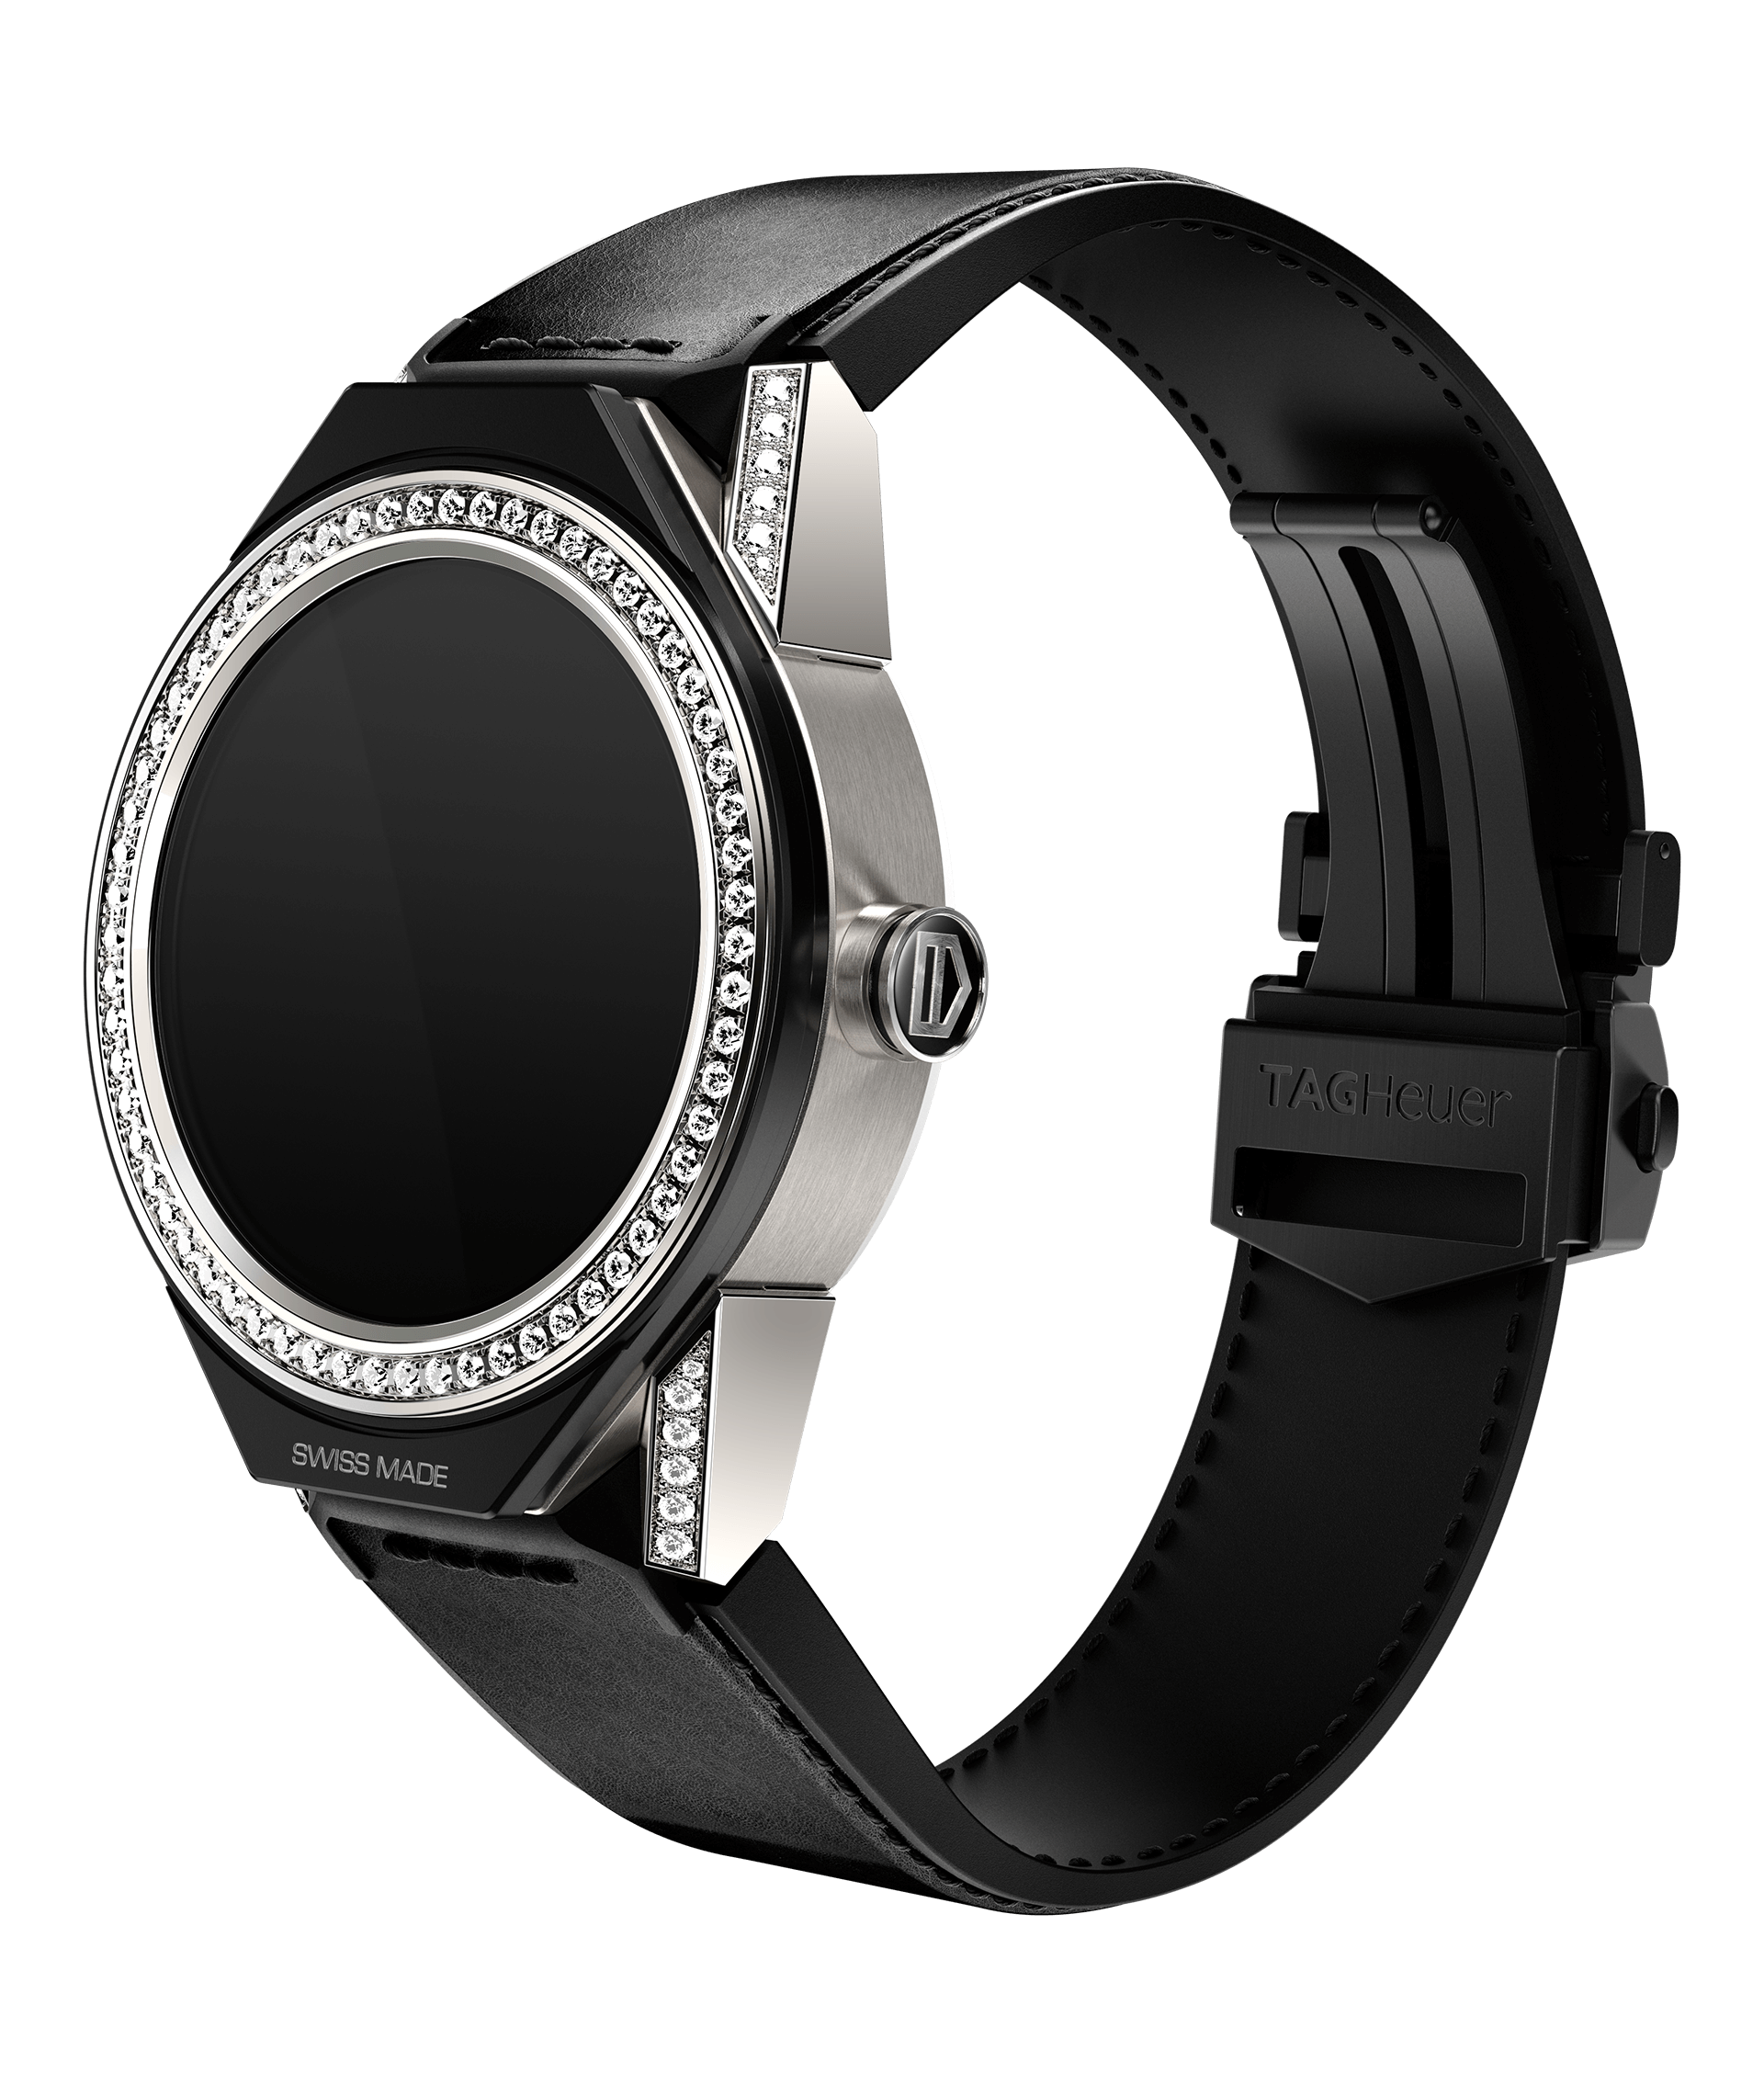 watch r skagen hybrid smart hagen watches connected comments